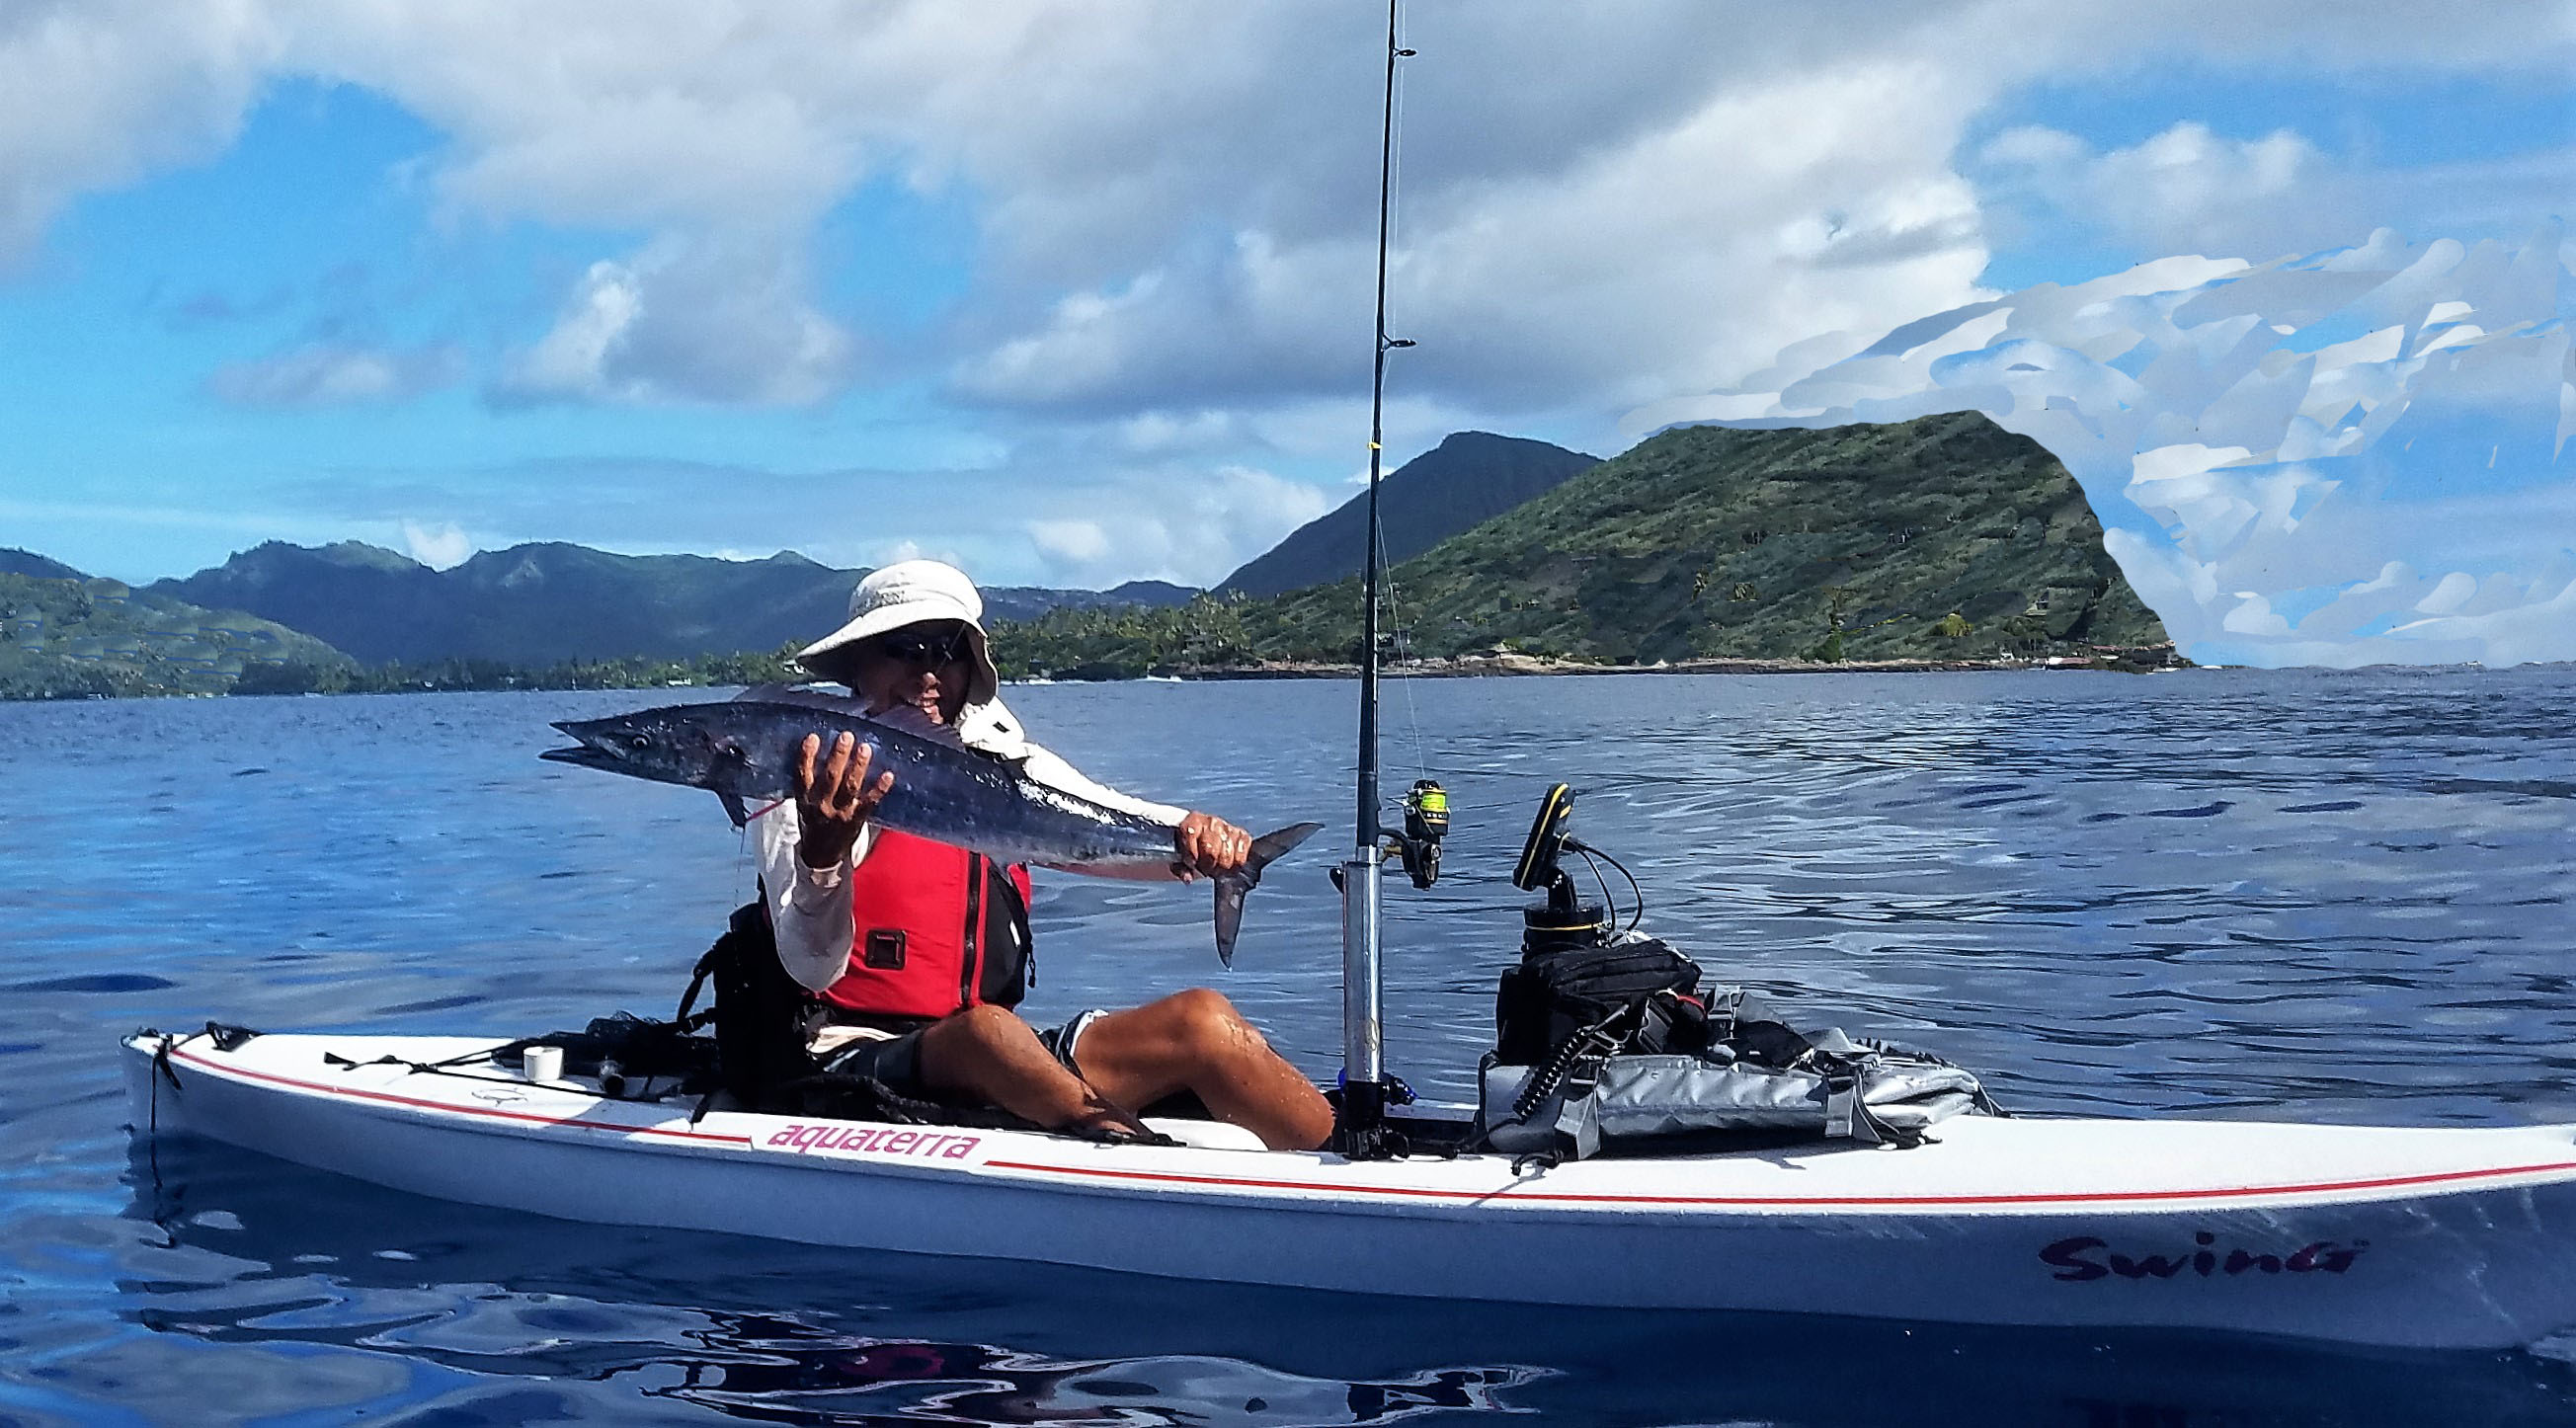 de4b23aaa98 Frank and I first fished together in 2014 just as this website's blog  began. He is a very accomplished longboard surfer of Hawaii surfing  aristocracy, ...